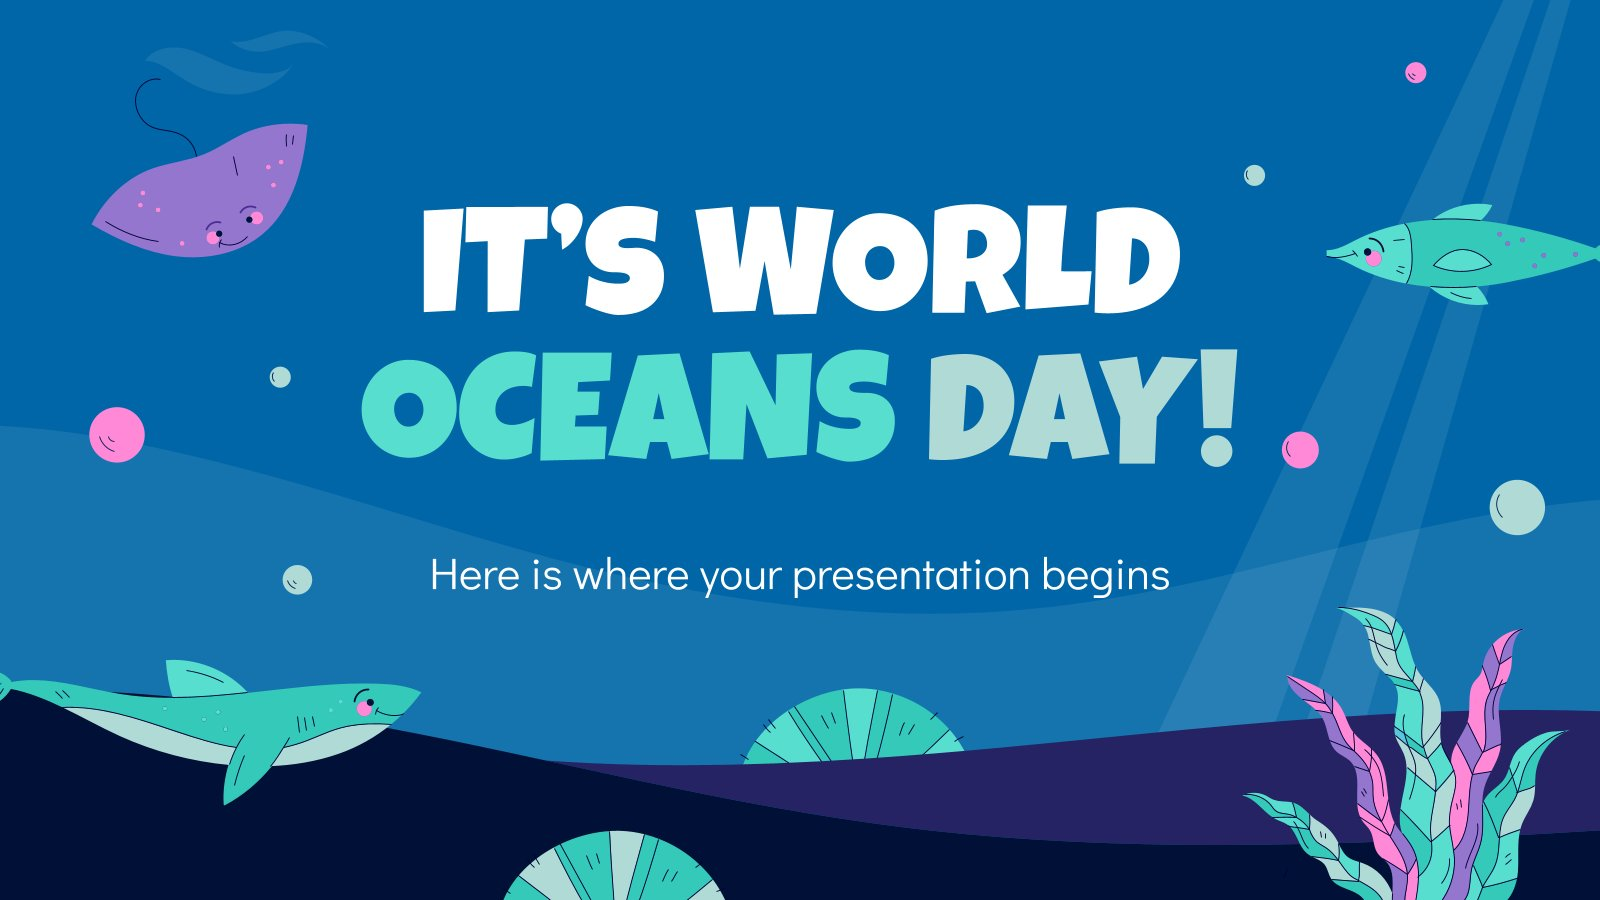 It's World Oceans Day presentation template